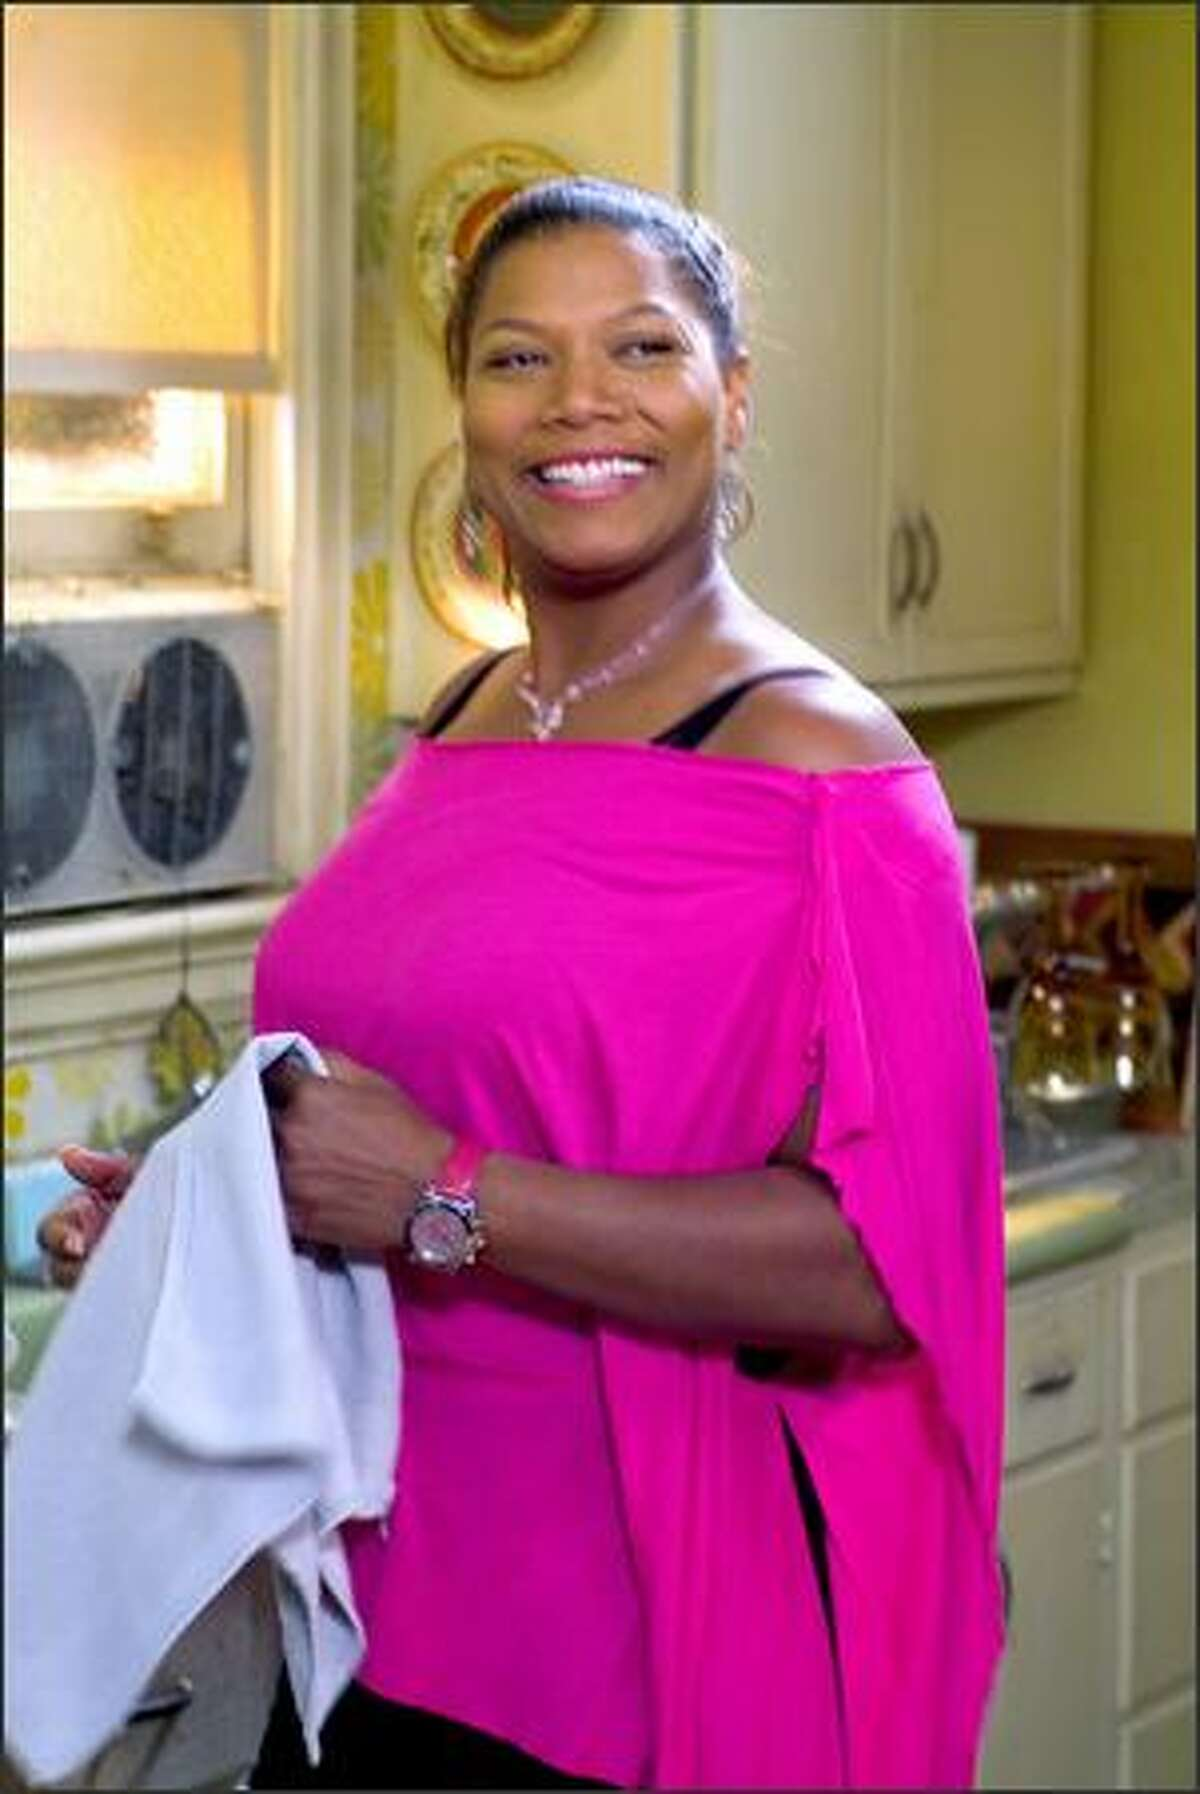 Queen Latifah plays Gina Norris, a hair stylist who risks it all to buy a rundown beauty shop in Atlanta.